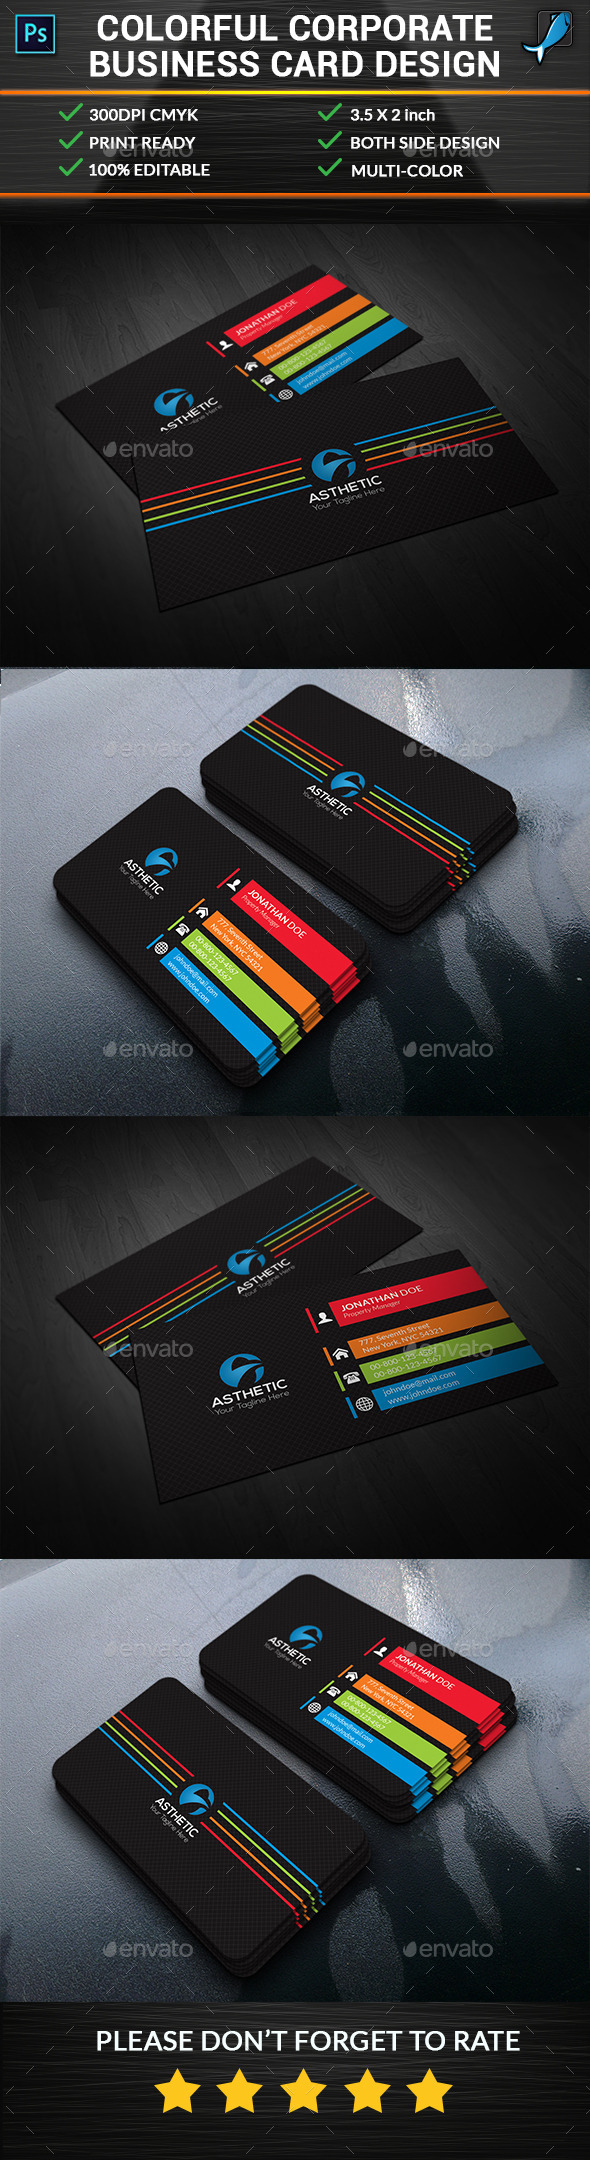 Colorful Corporate Business Card - Corporate Business Cards